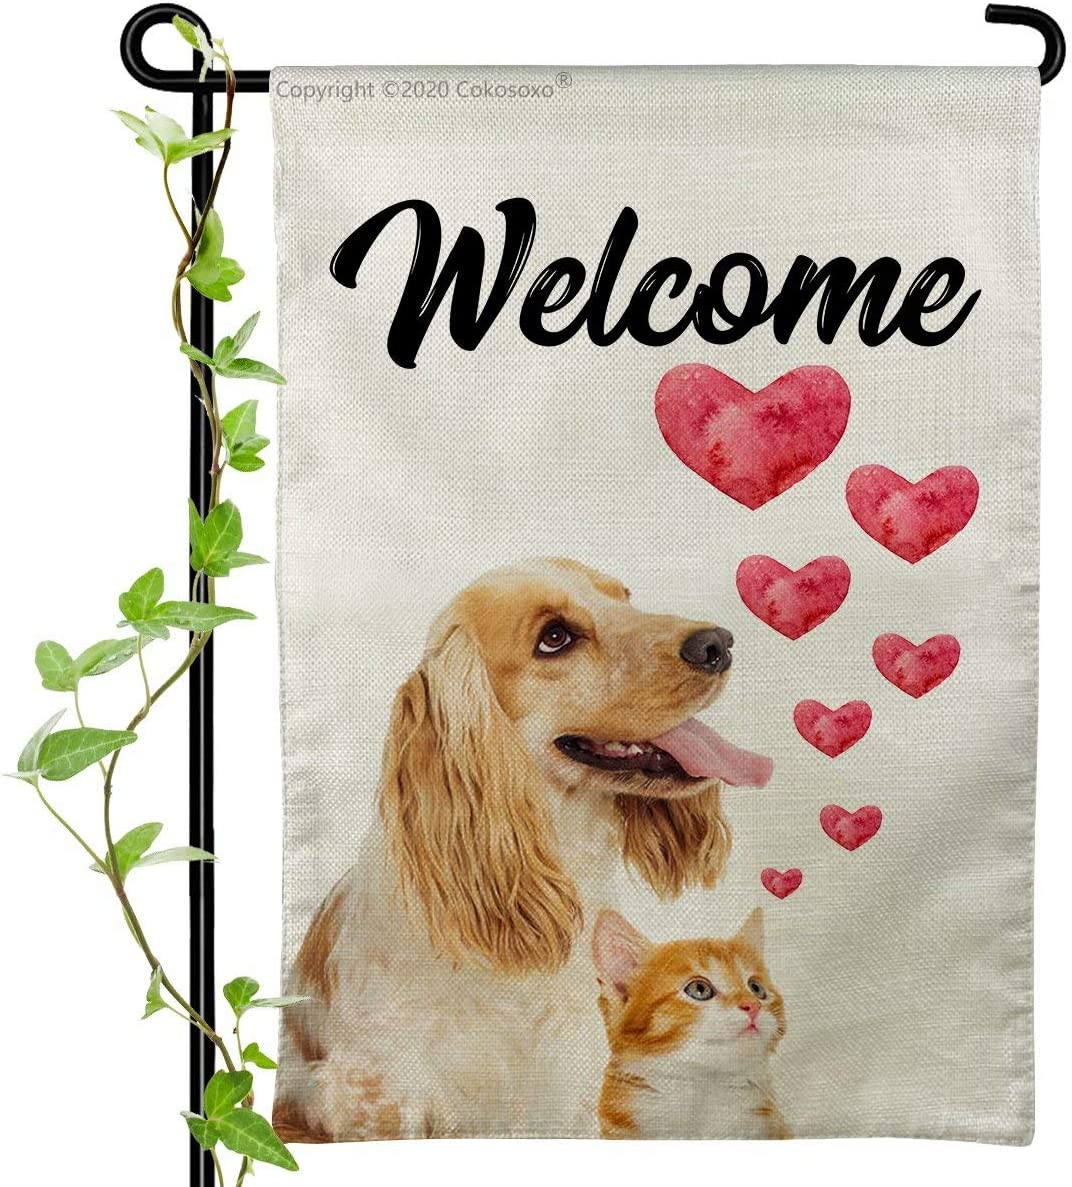 Welcome Animals Garden Flag-Golden Retriever and Cute Brown Cat with Red Love Hearts- Burlap Vertical Double Sided Outdoor Decor Sign for Yard Lawn Patio 12x18 inch